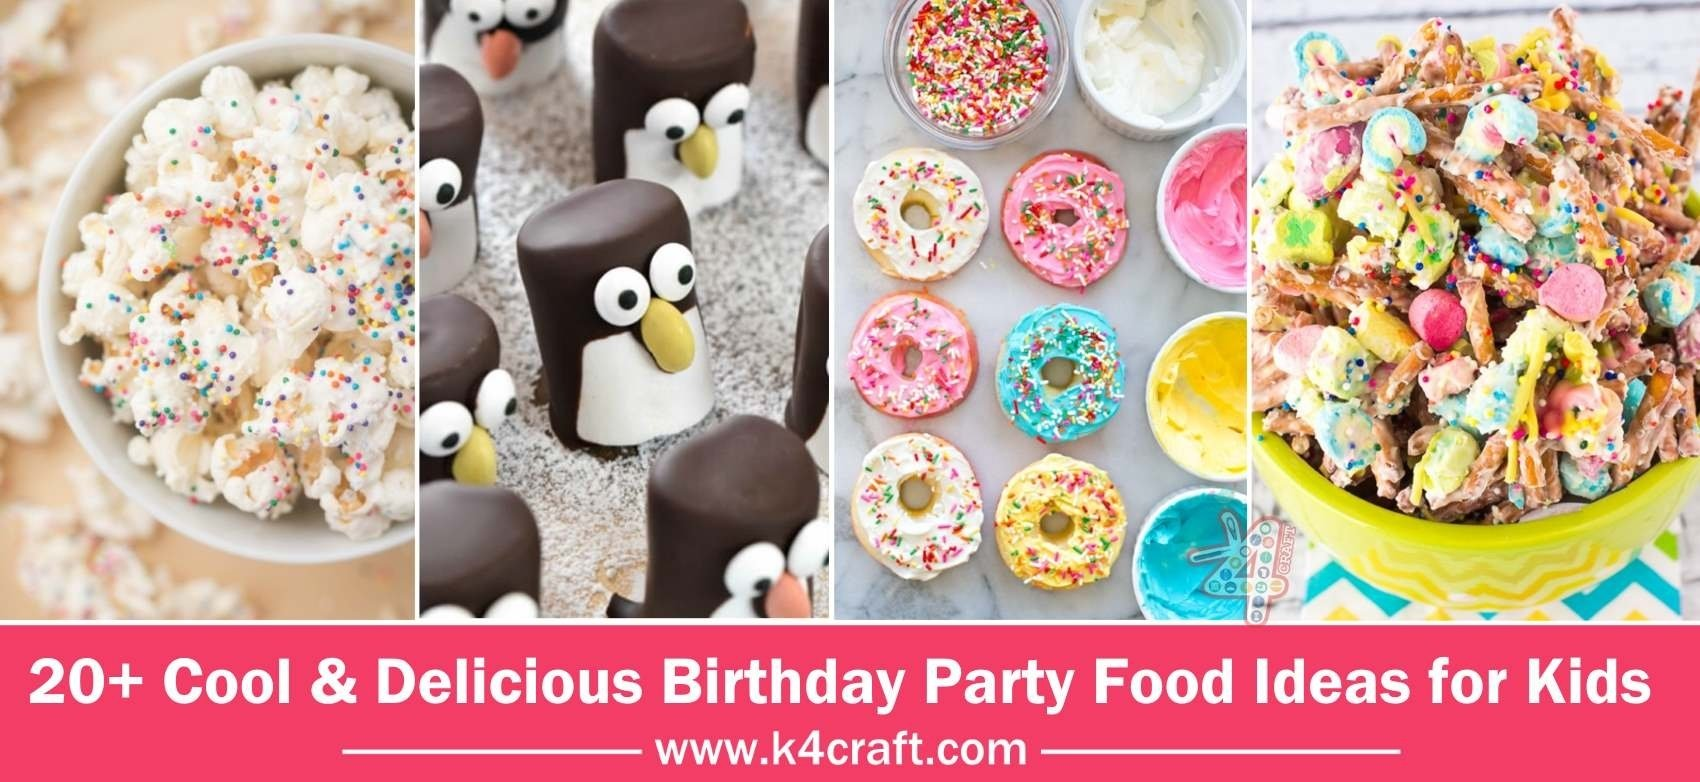 10 Wonderful Bake Sale Ideas For Kids cool delicious birthday party food ideas for kids k4 craft 1